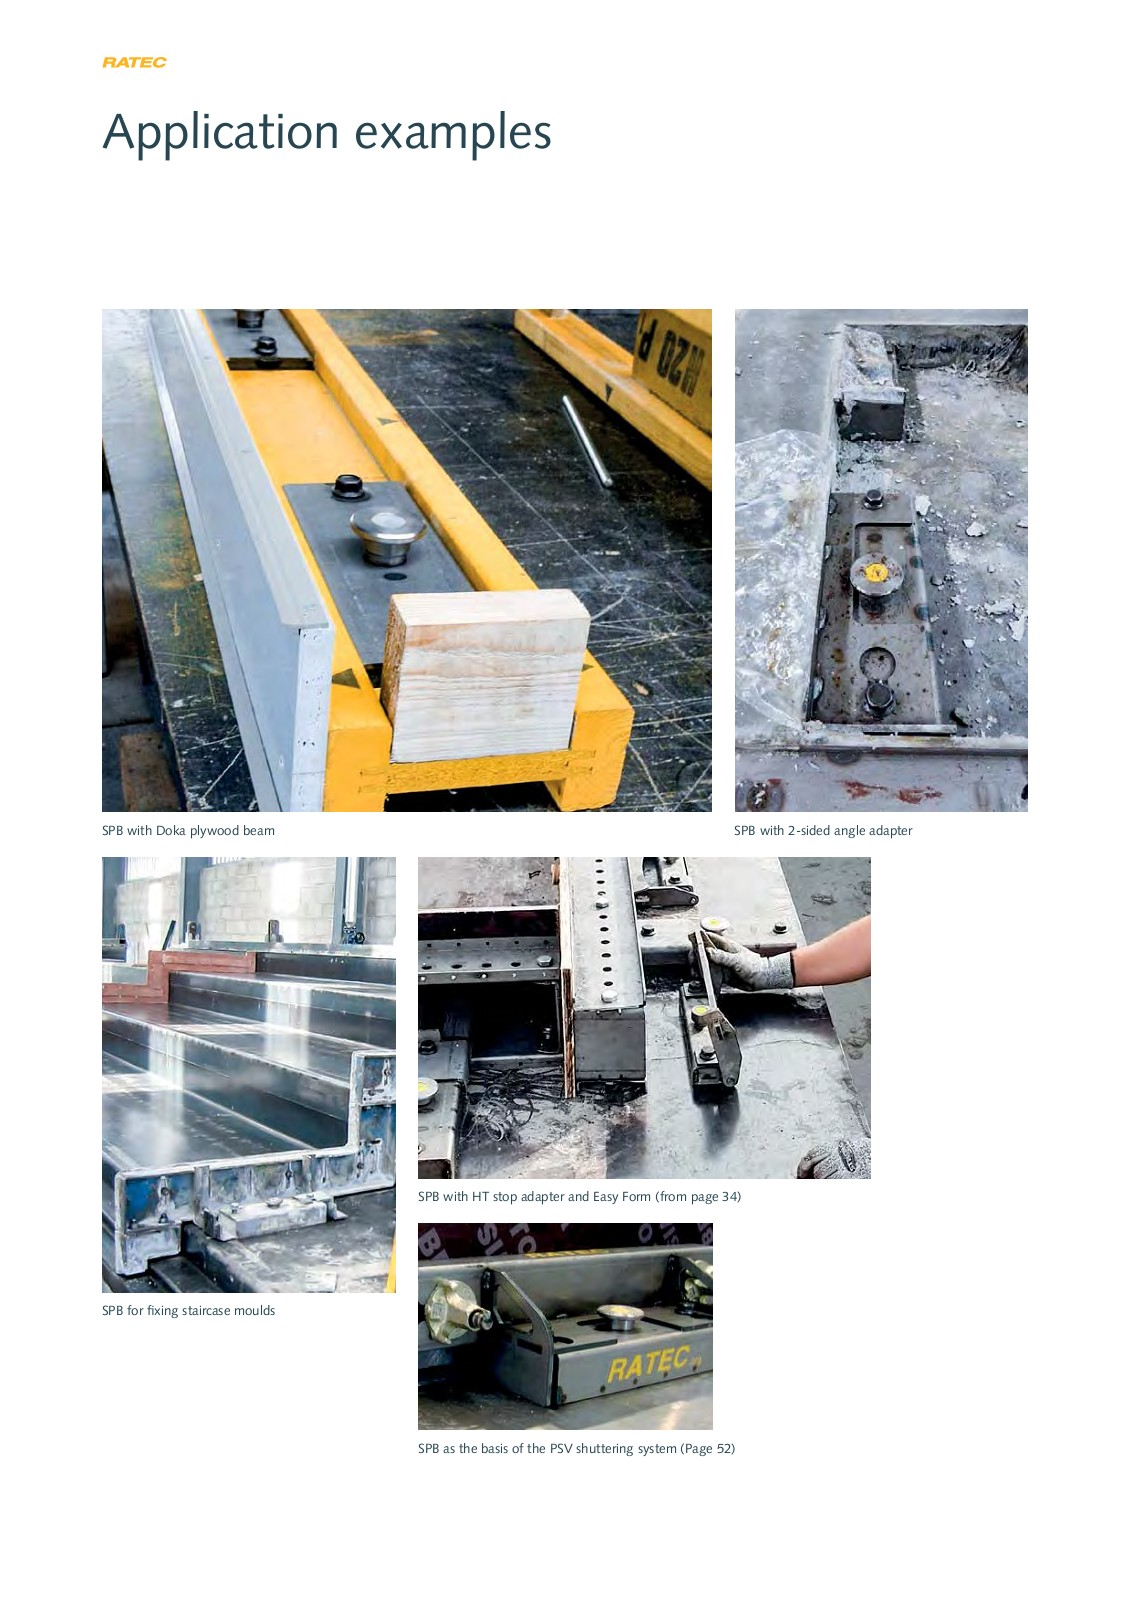 Innovation leader with magnetic formwork systems for precast